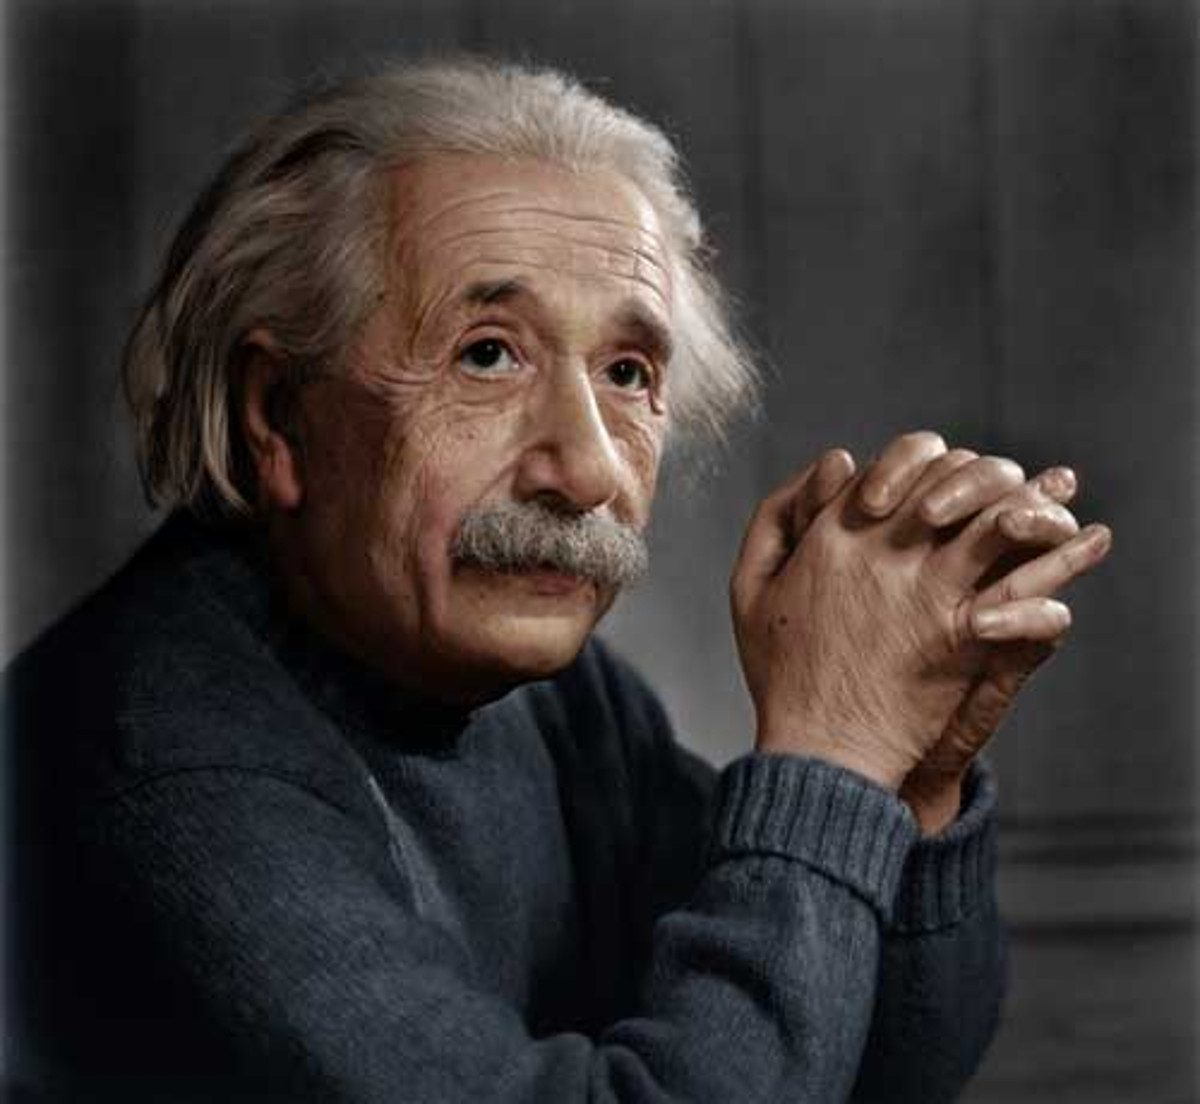 Albert Einstein - 14 March 1879 – 18 April 1955